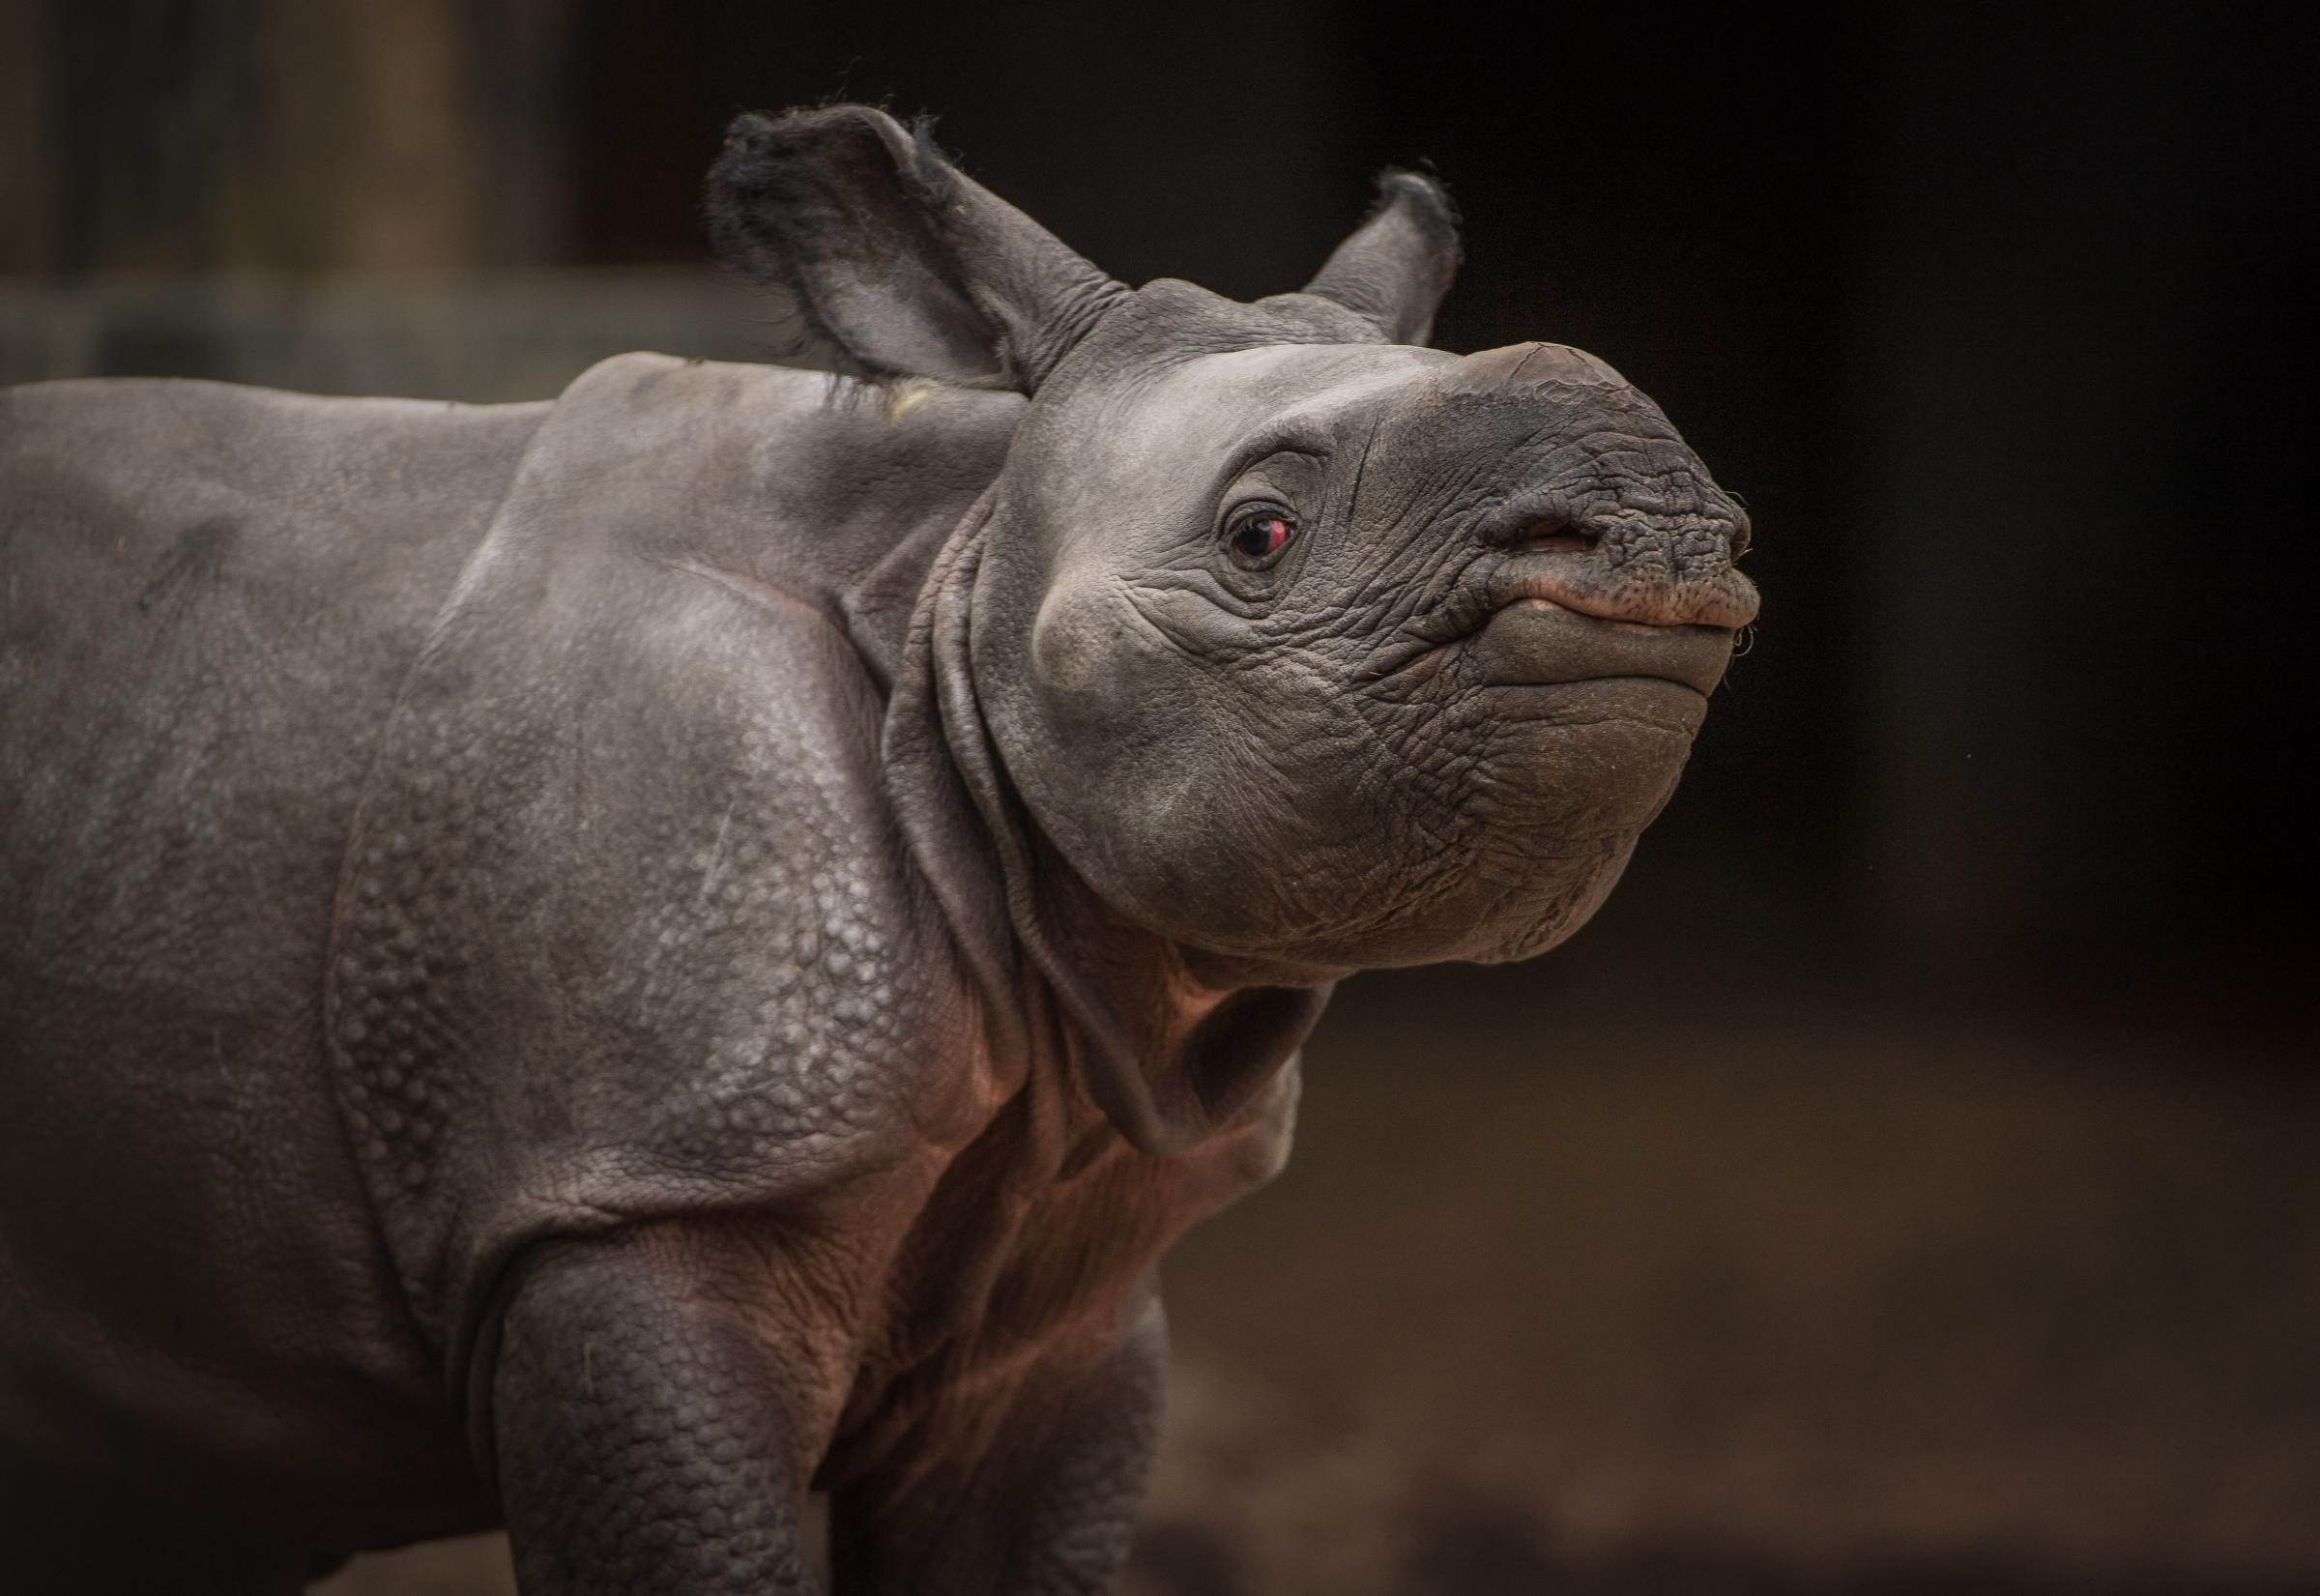 Rare greater one-horned rhino born at Chester Zoo